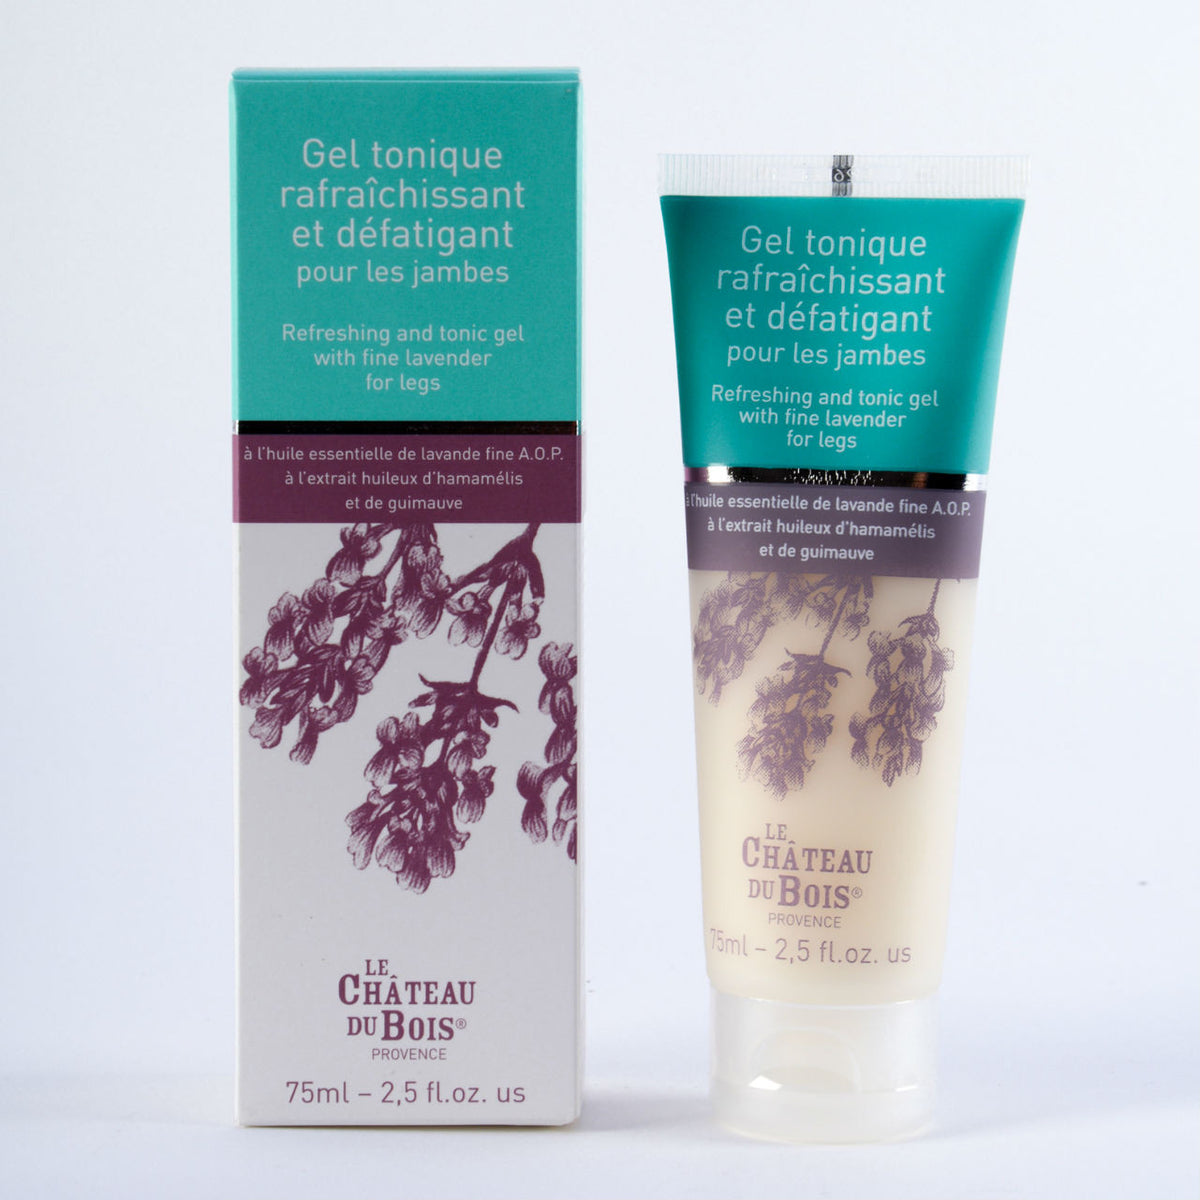 Refreshing and Tonic Gel with Fine Lavender for Legs 75ml